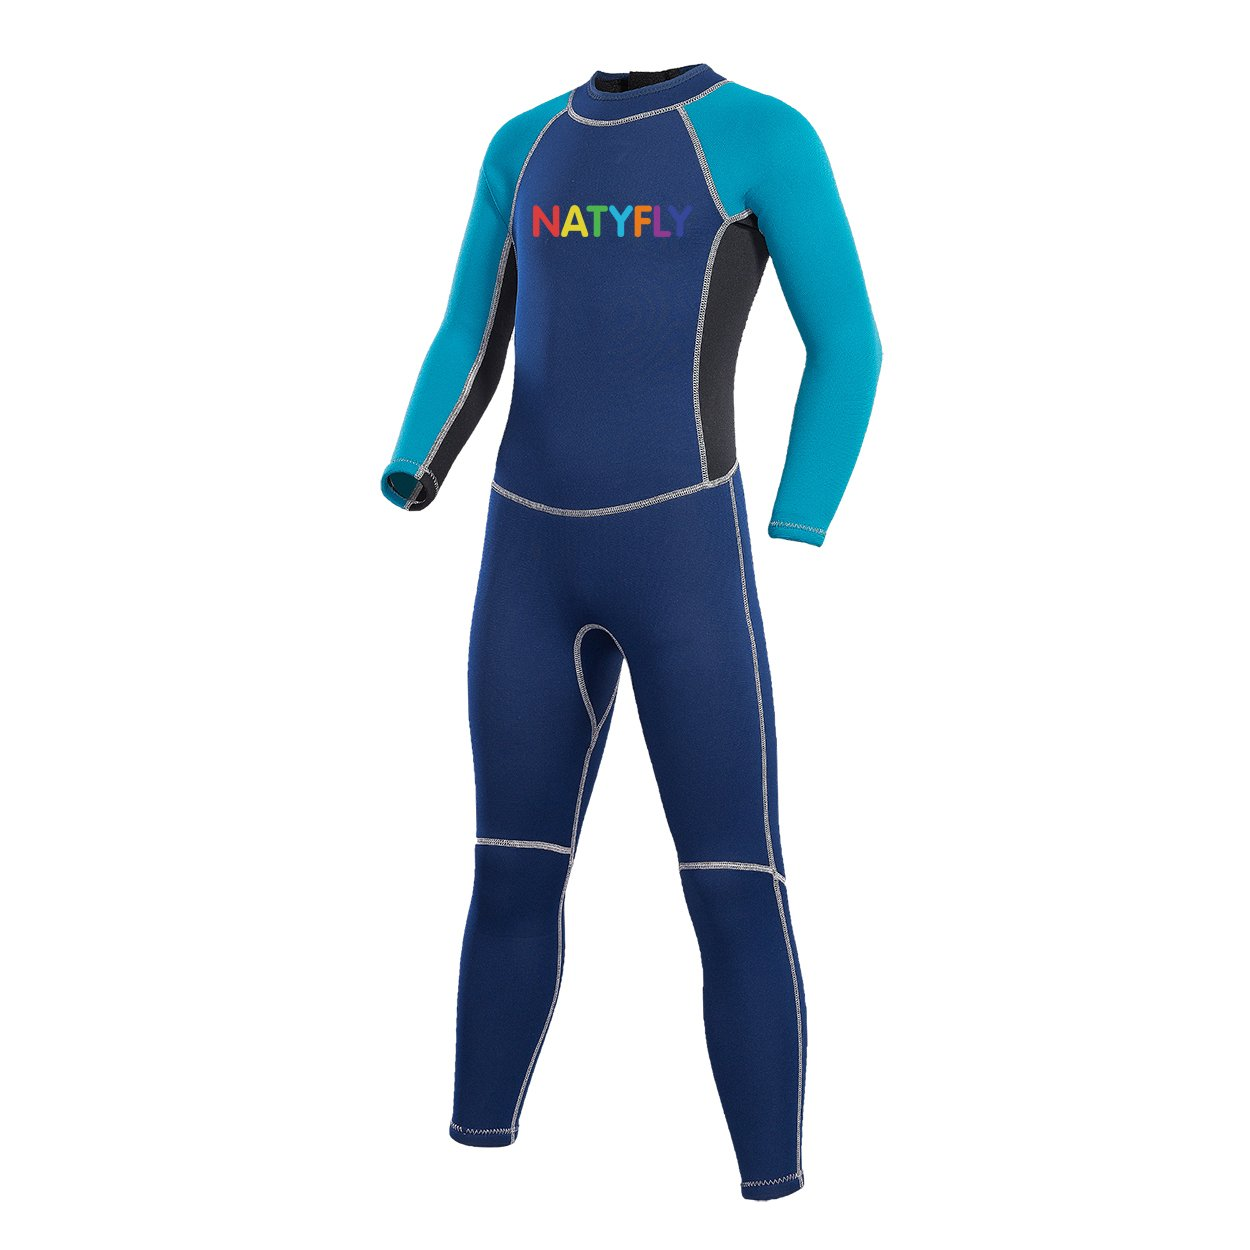 NATYFLY Kids Wetsuit, 2mm Neoprene Thermal Swimsuit, Full Wetsuit for Girls Boys and Toddler, Long Sleeve Kids Wet Suits for Swimming